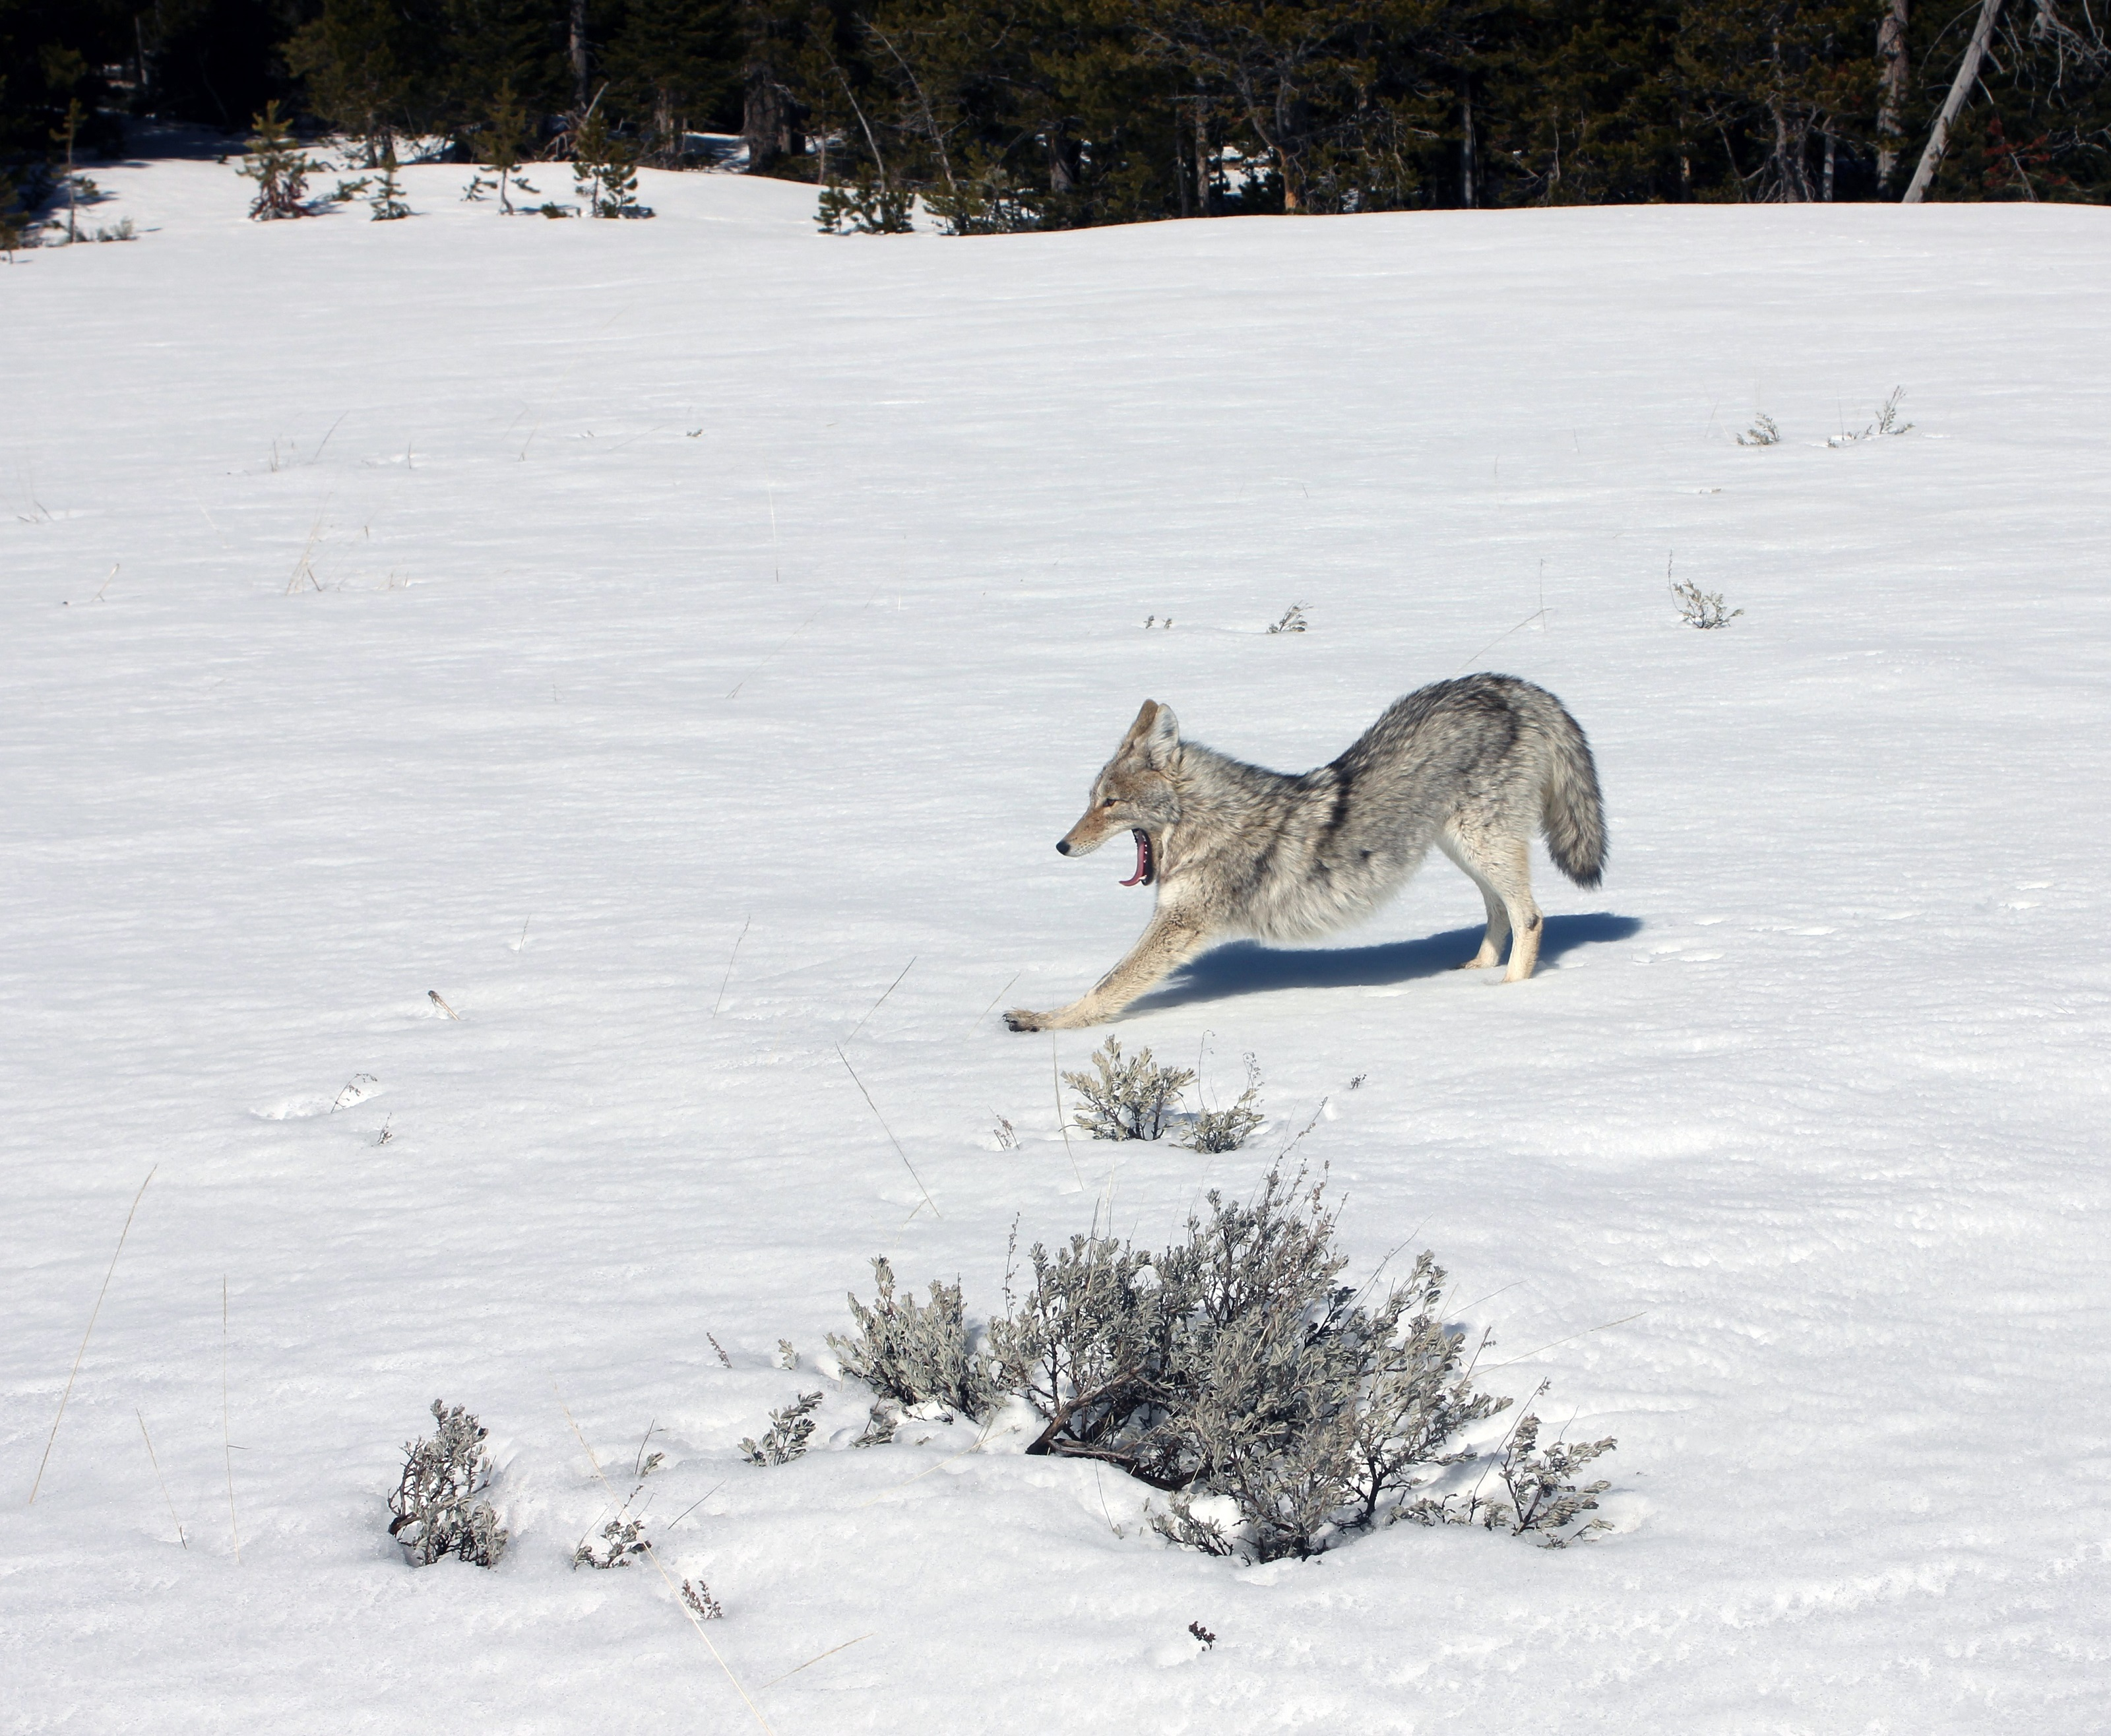 Coyote in winter photo